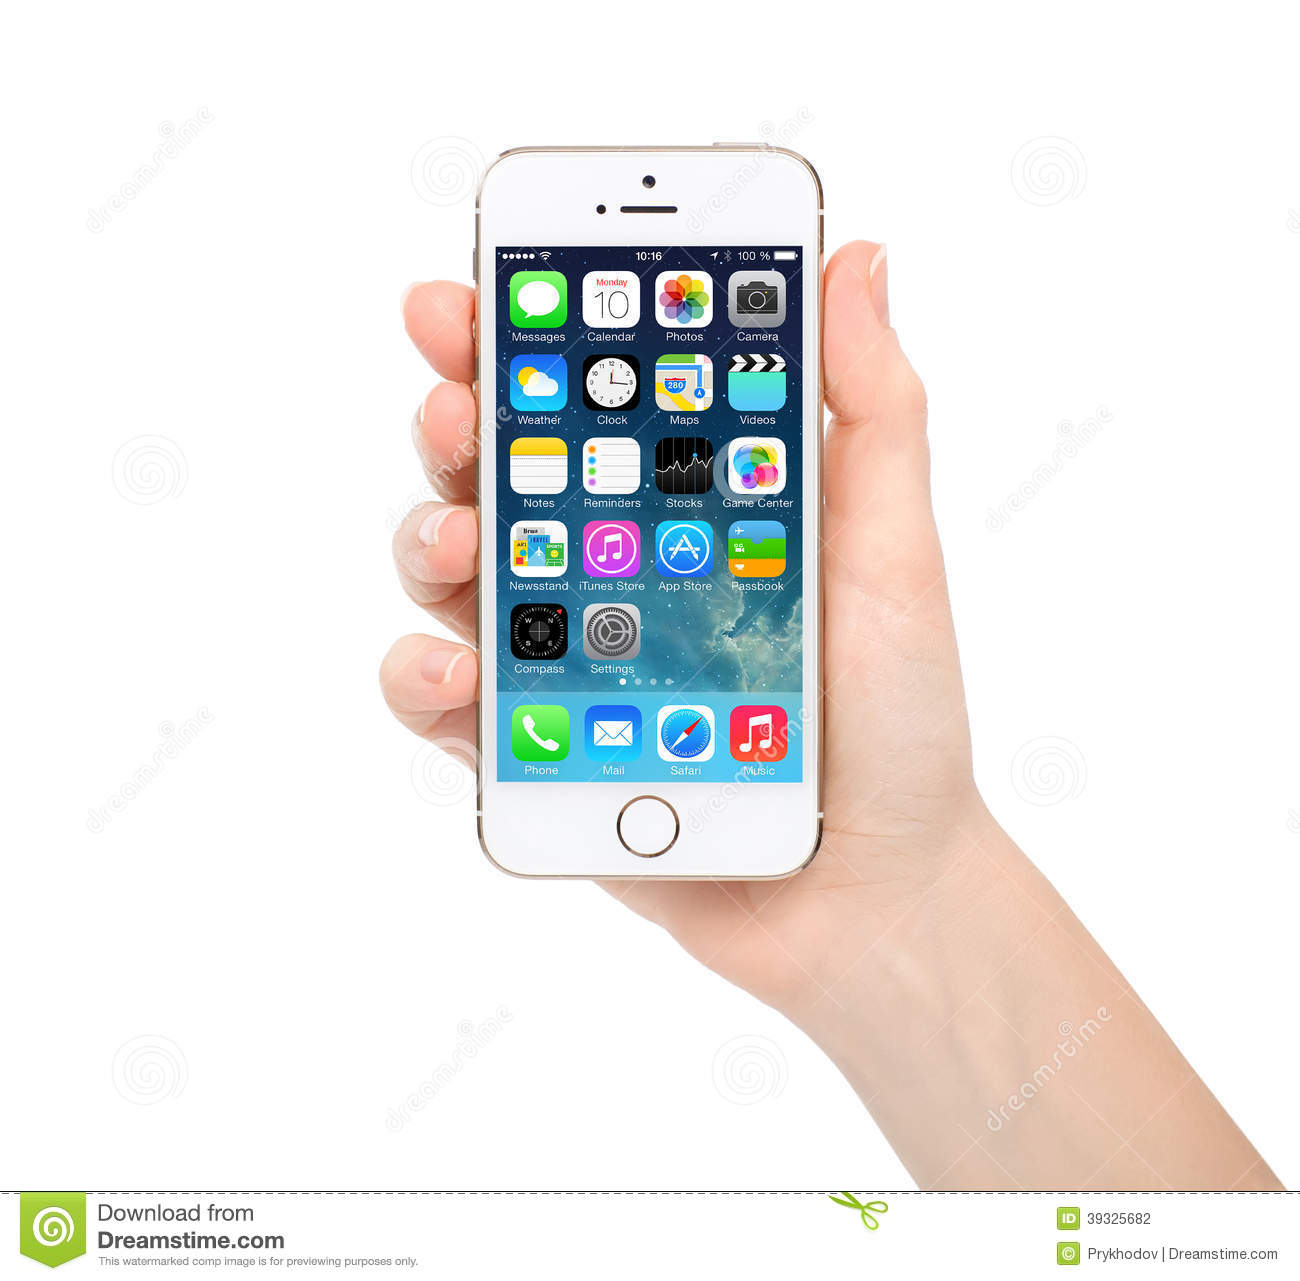 newest iphone update new update system ios 7 1 screen on iphone 5s gold 12708